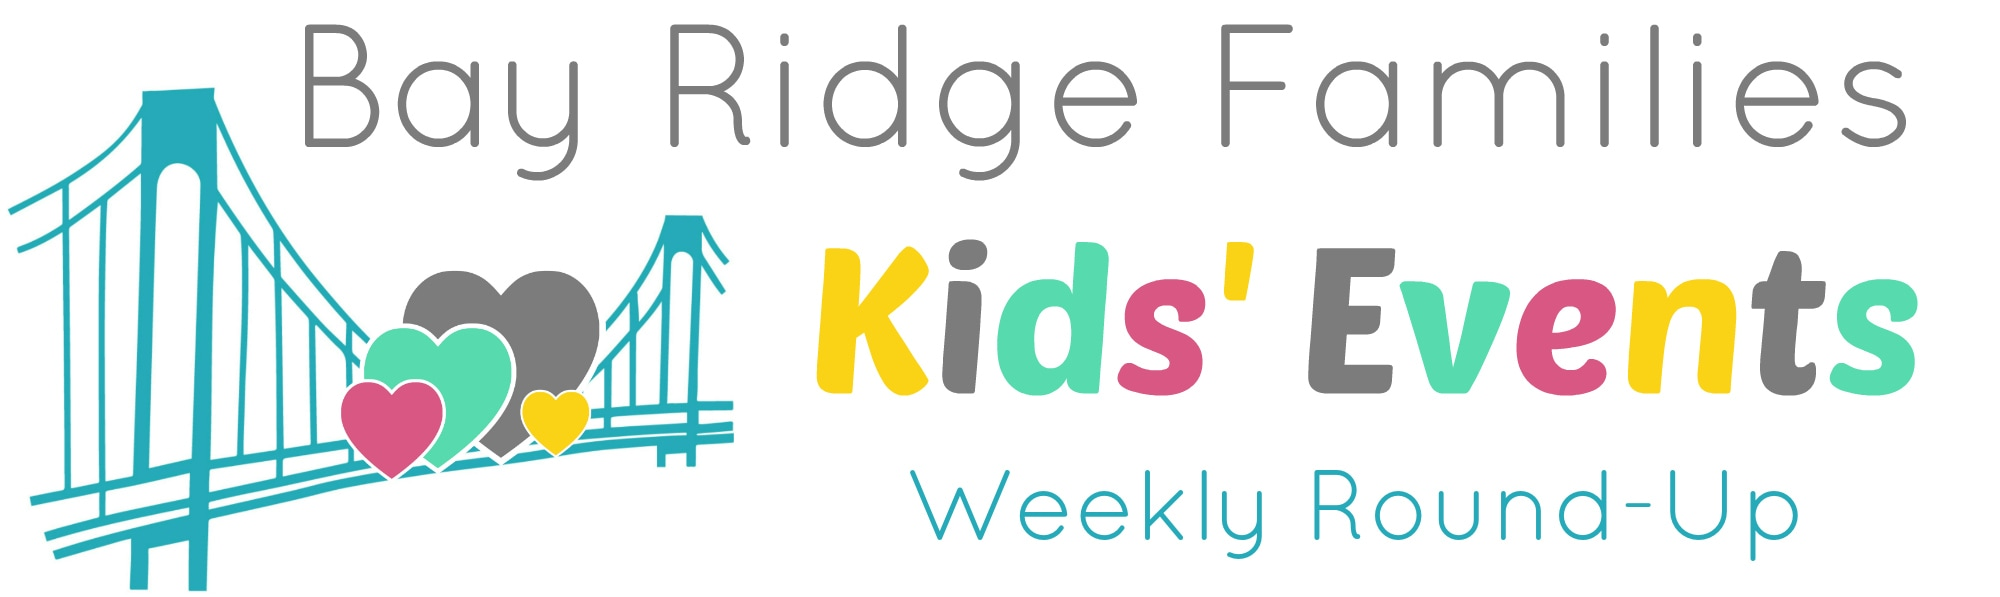 Bay Ridge Area Kids' Events Roundup - June 28 - July 4, 2017